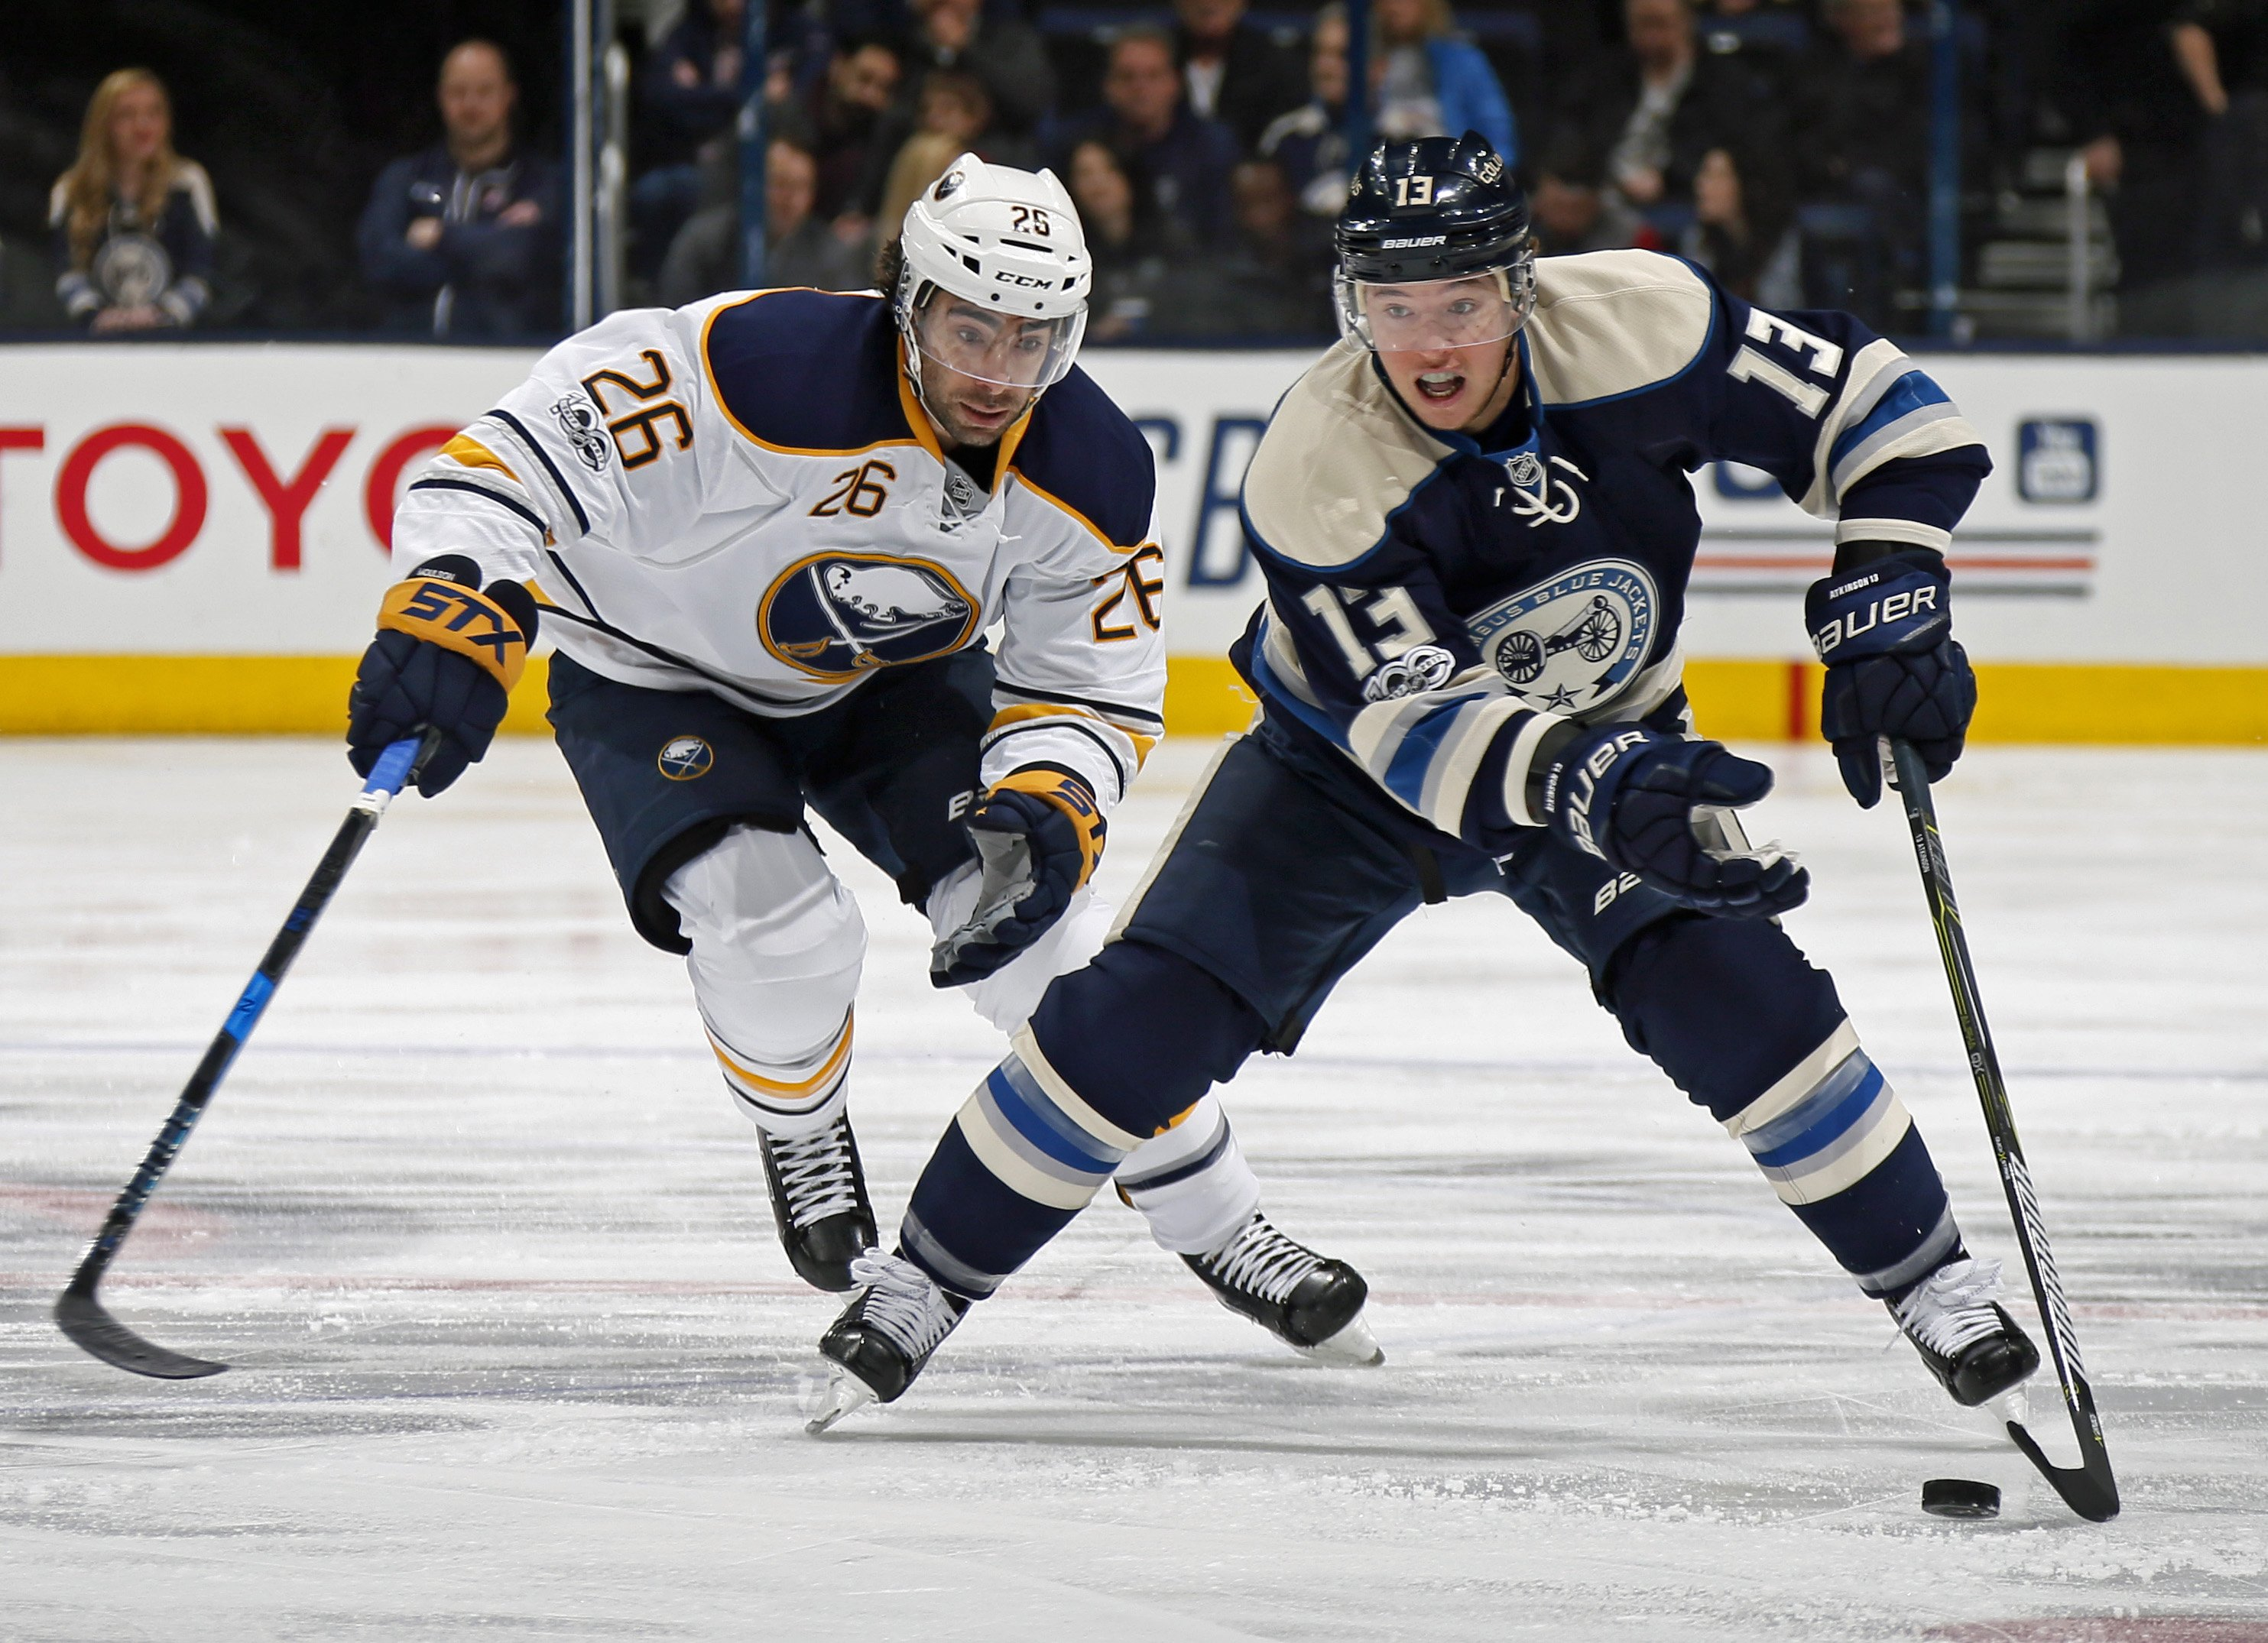 The Sabres' Matt Moulson chases Columbus' Cam Atkinson on Tuesday. (Tribune News Service)